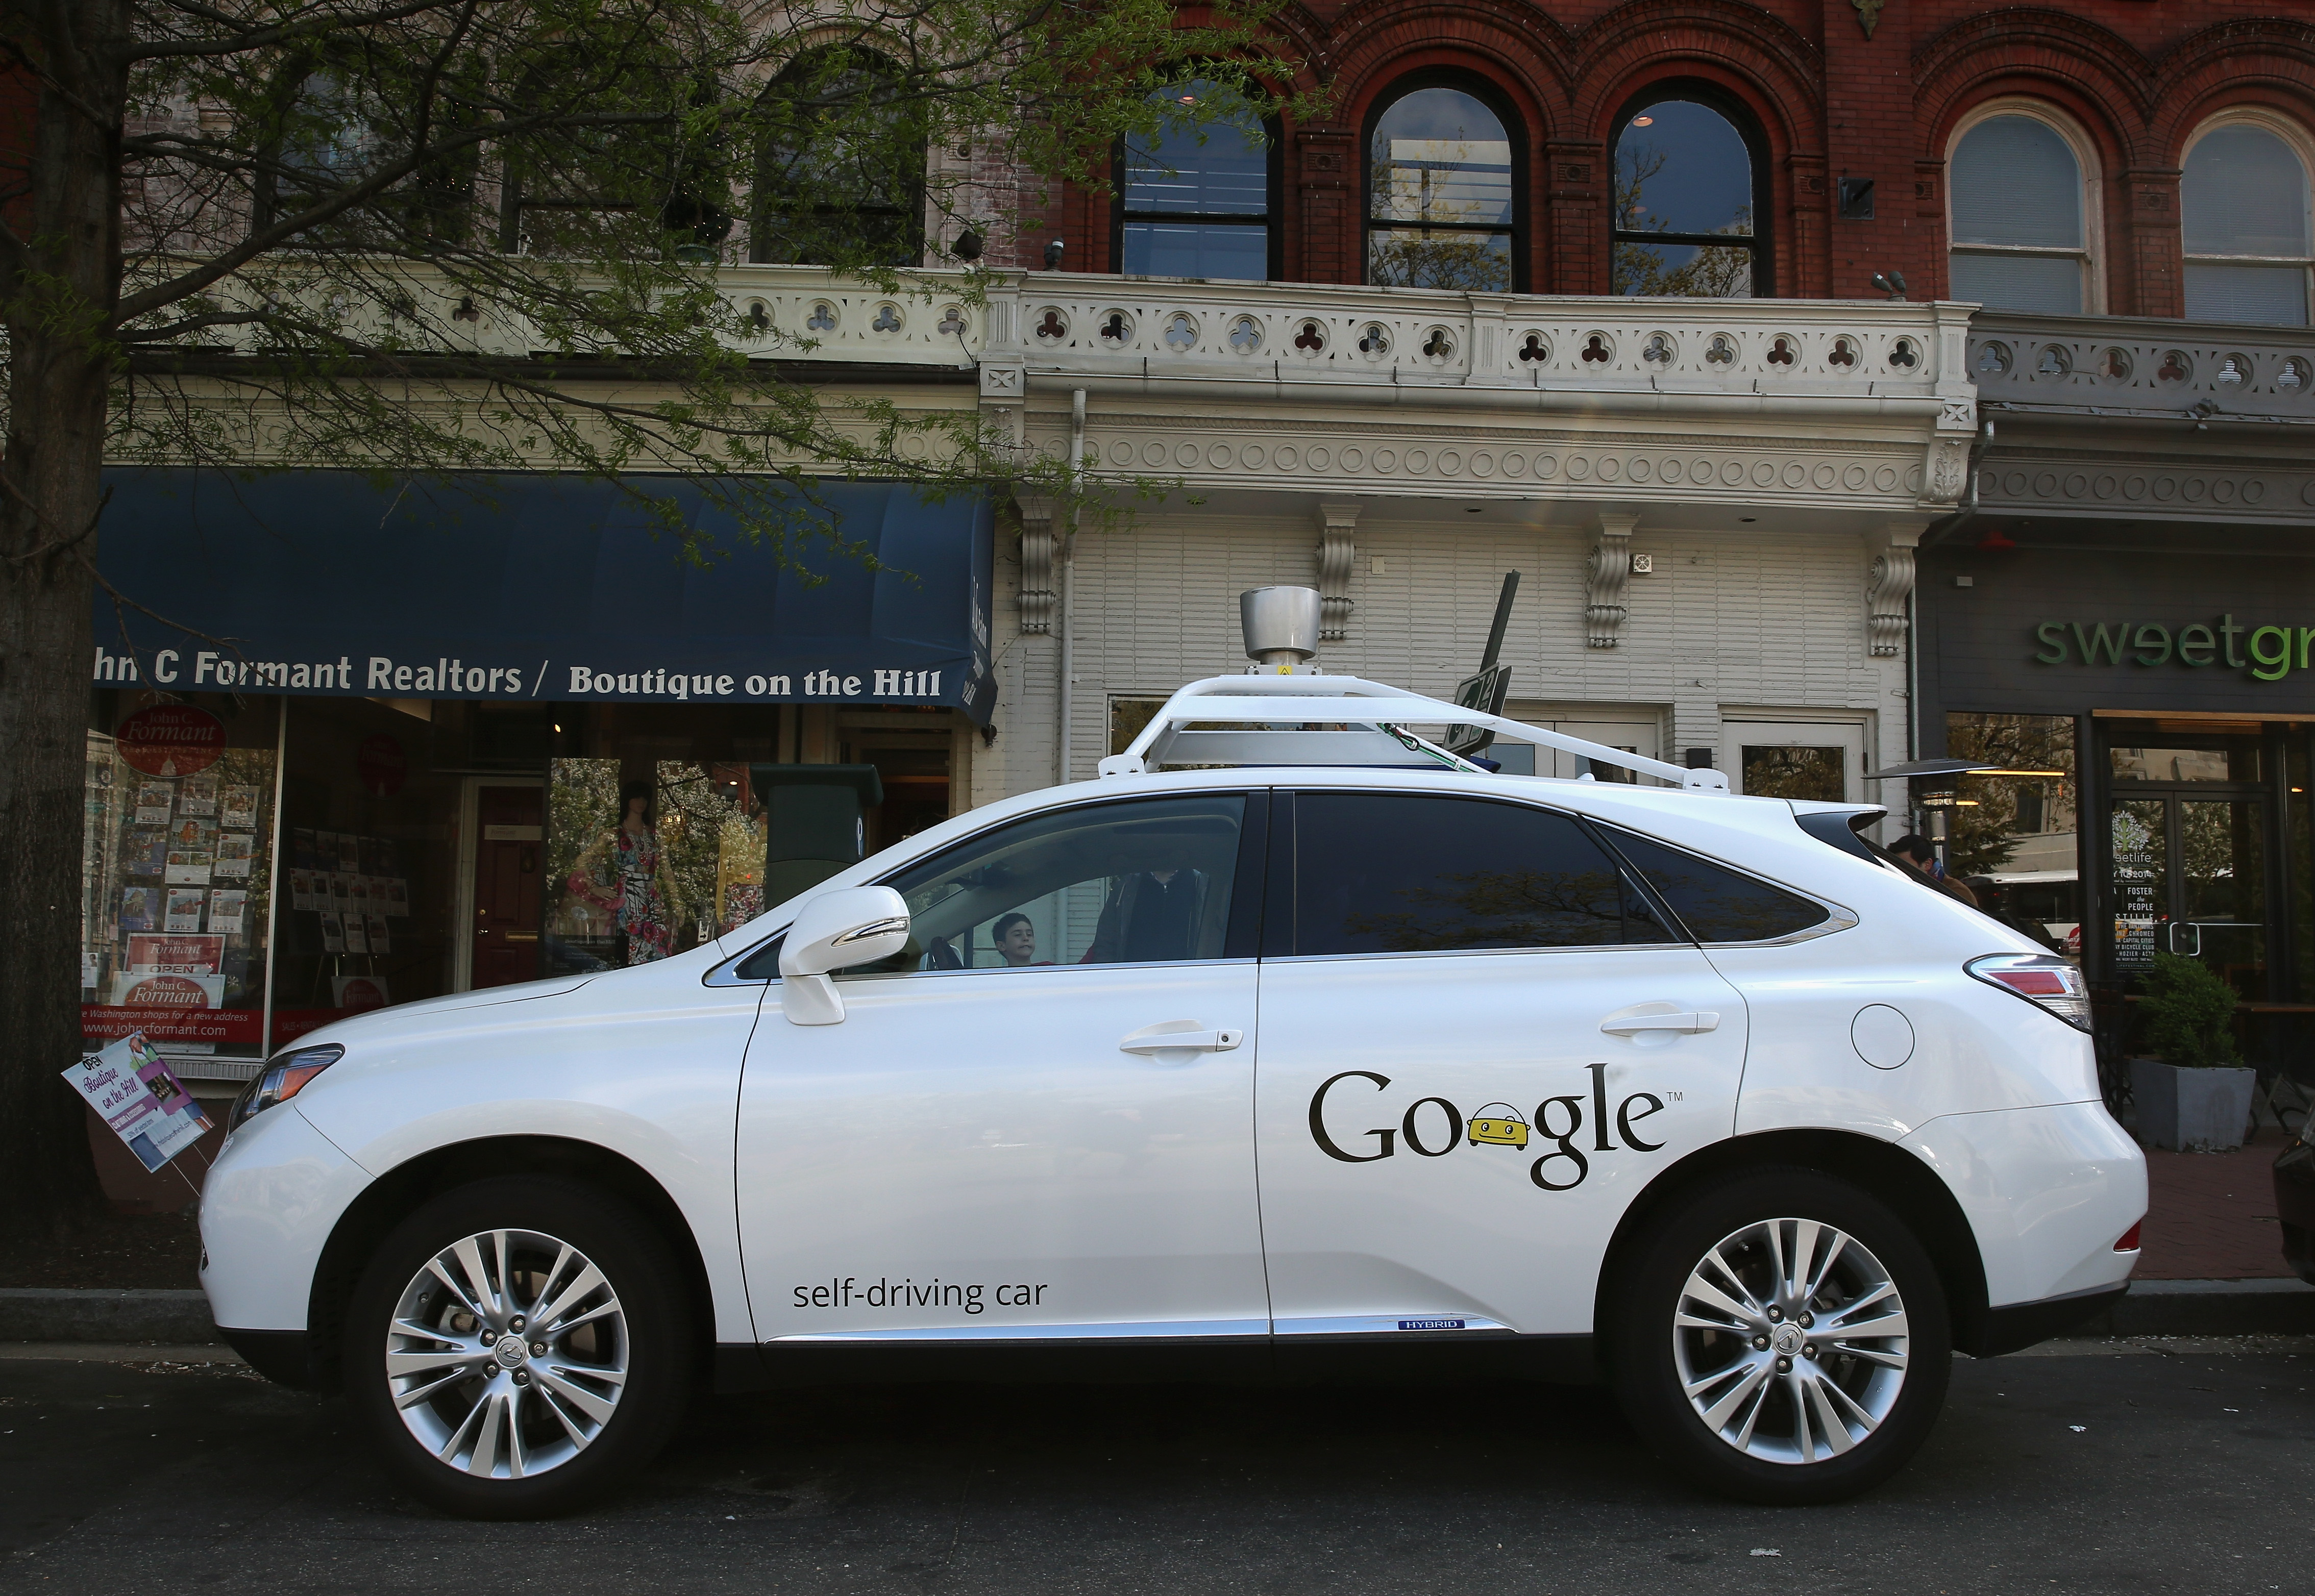 Googles Lexus RX 450H Self Driving Car is seen parked on Pennsylvania Ave. on April 23, 2014 in Washington.